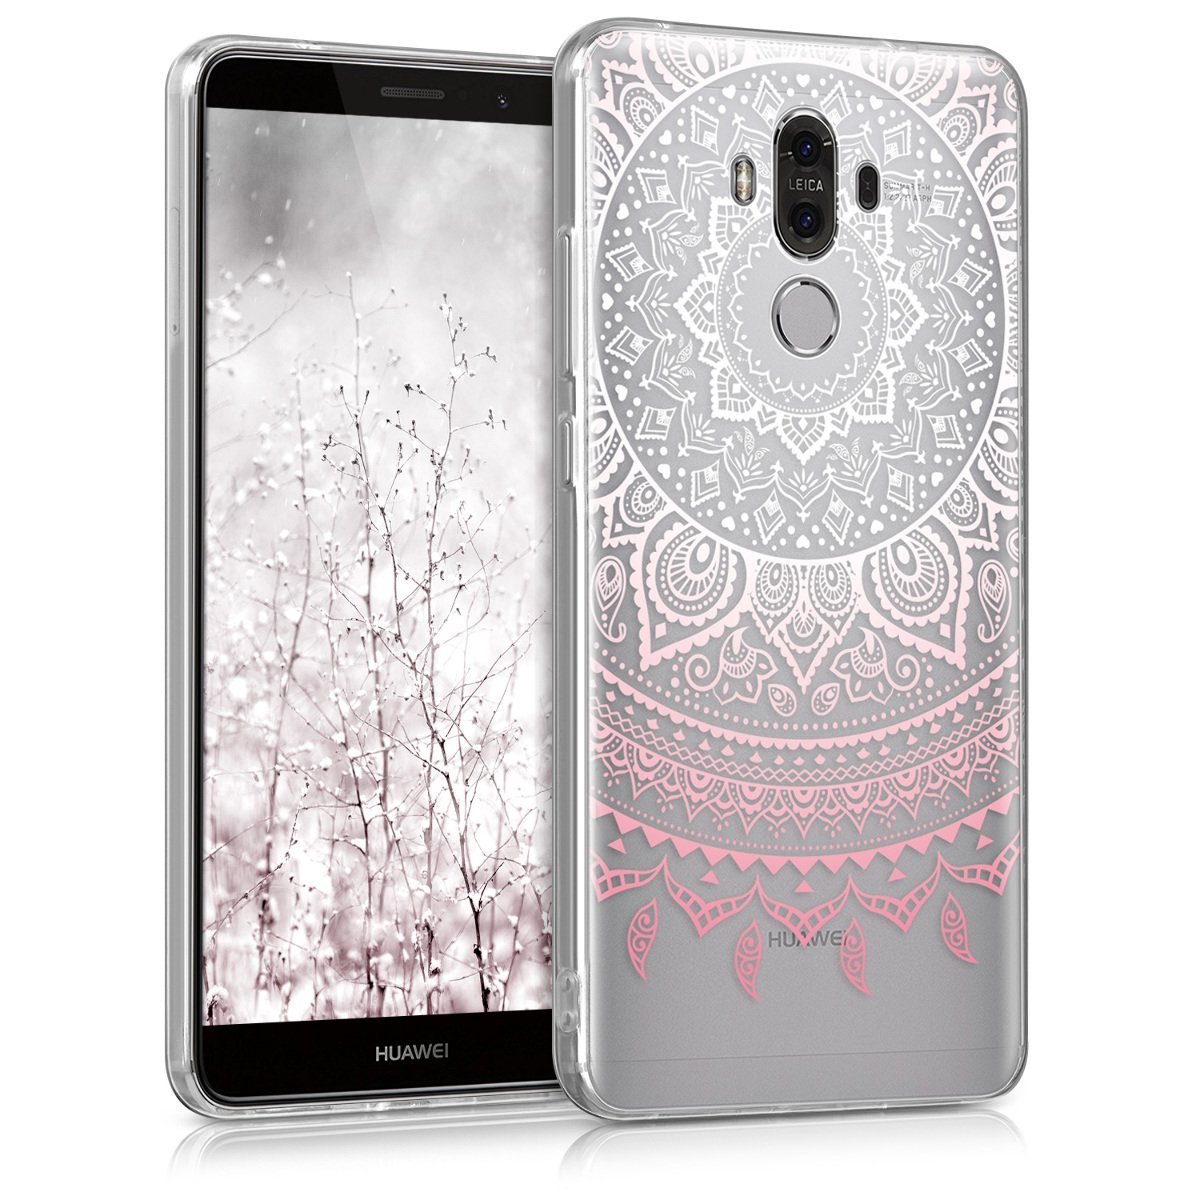 KW Θήκη Σιλικόνης Huawei Mate 9 - Light Pink/White Indian Sun (40276.01)